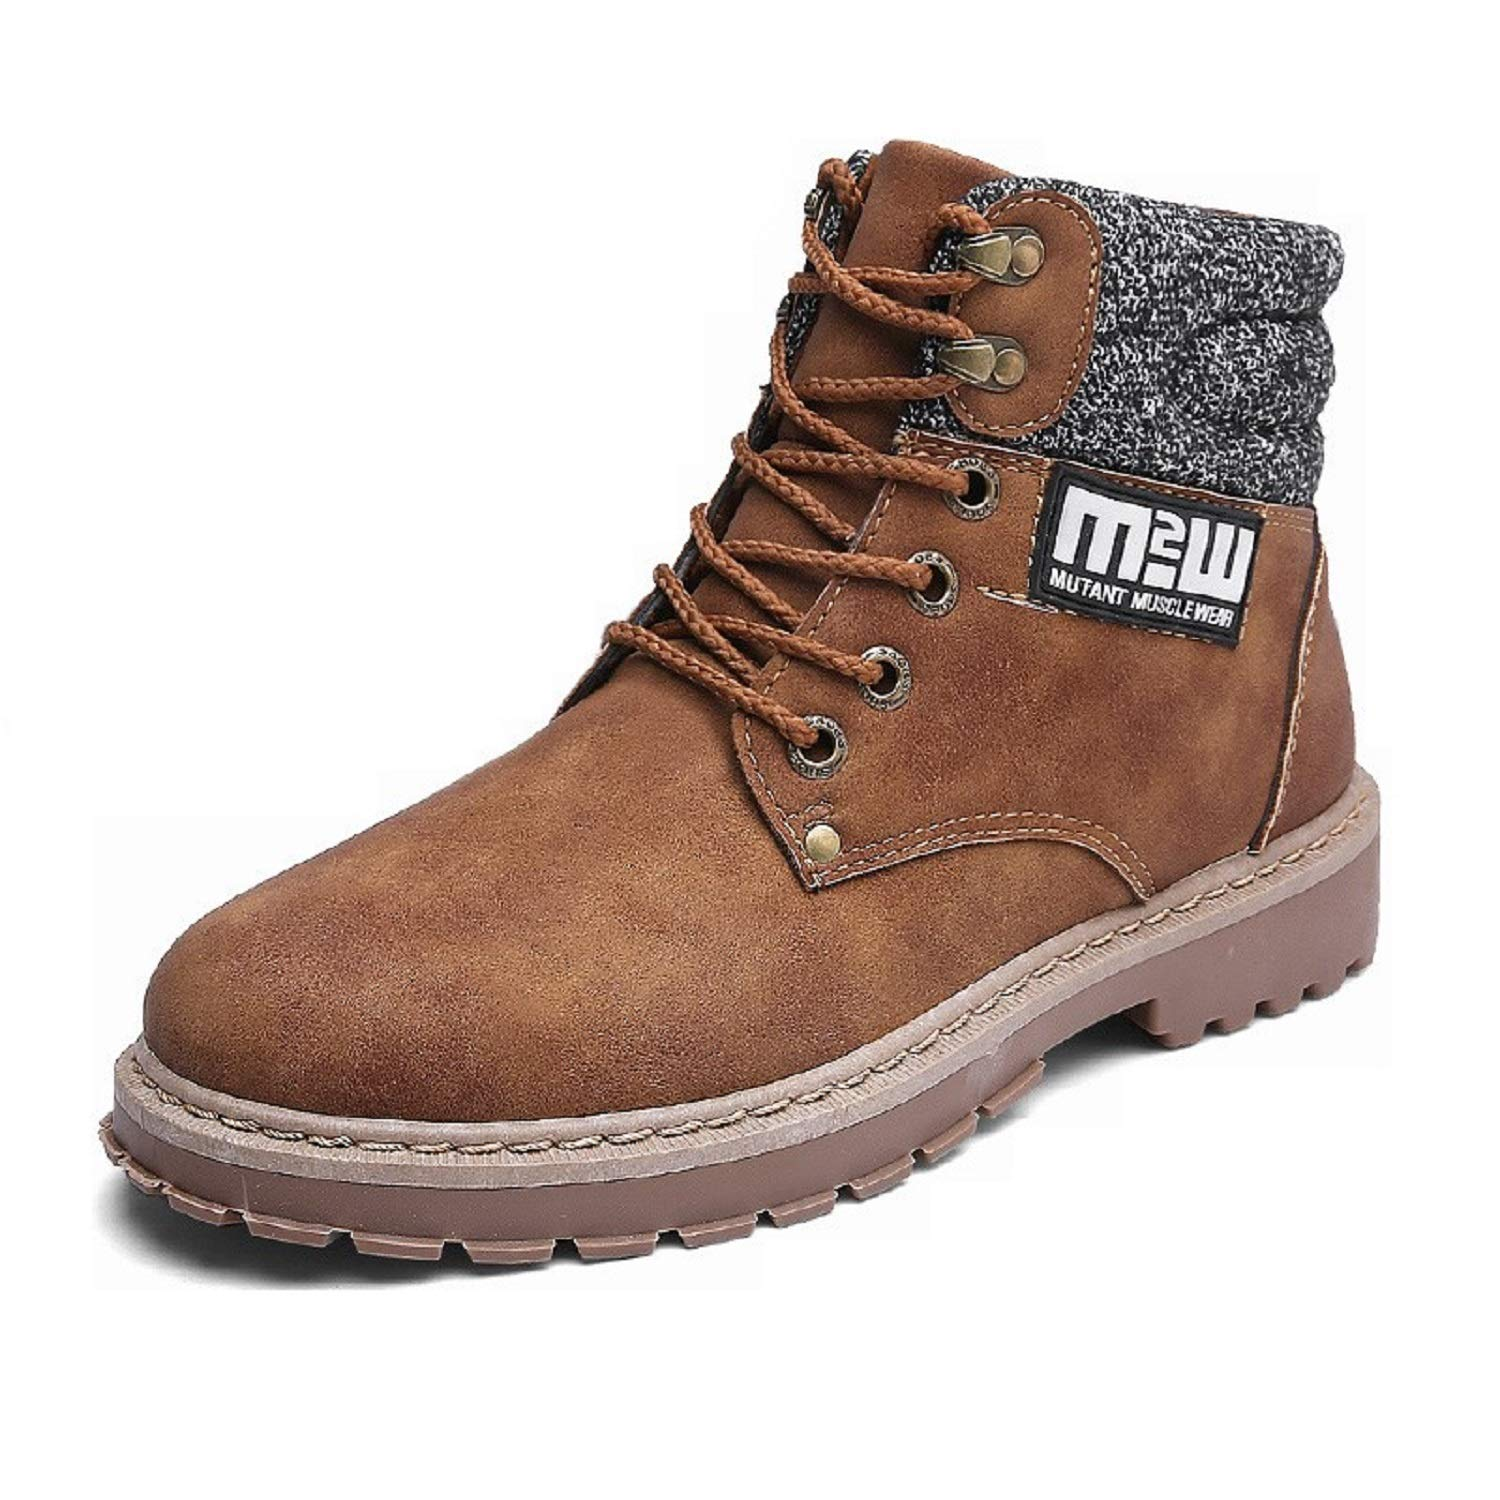 TQGOLD Mens High Top Waterproof Hiking Boots Fashion Ankle Work Boots Casual Lace up(Size 42,Brown)